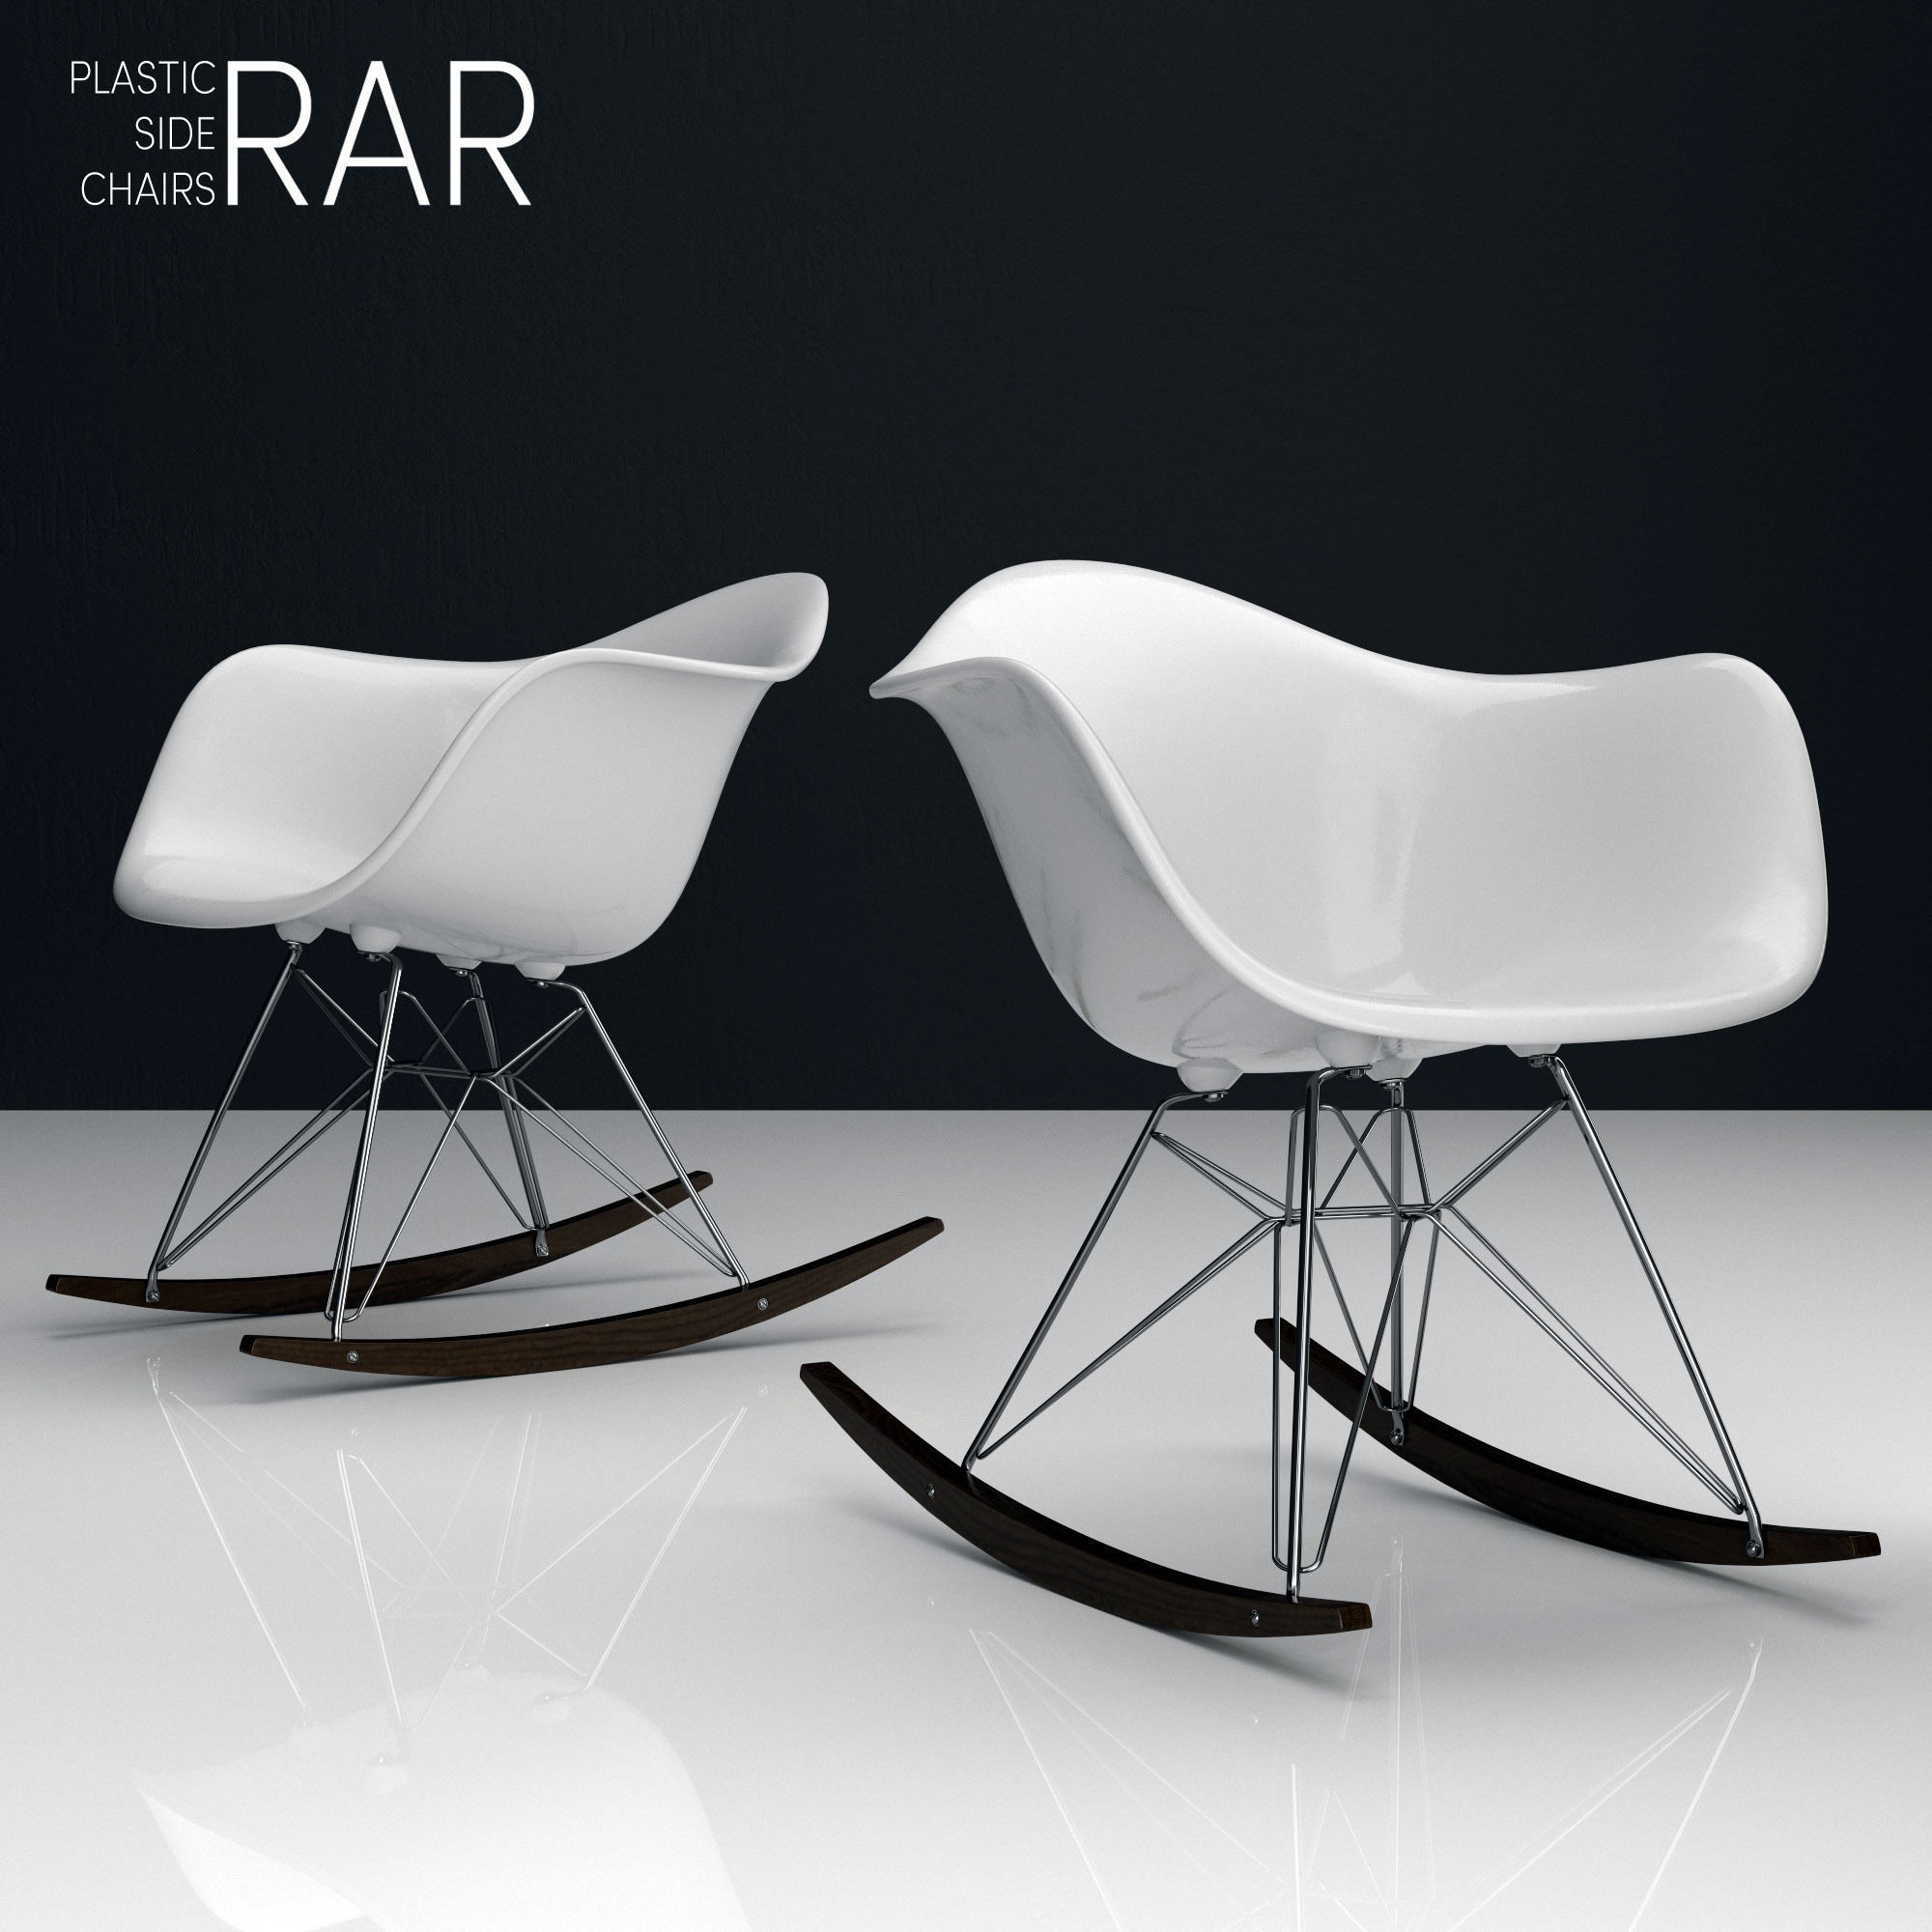 Eames Rar Eames Rar Plastic Side Chairs 3d Model